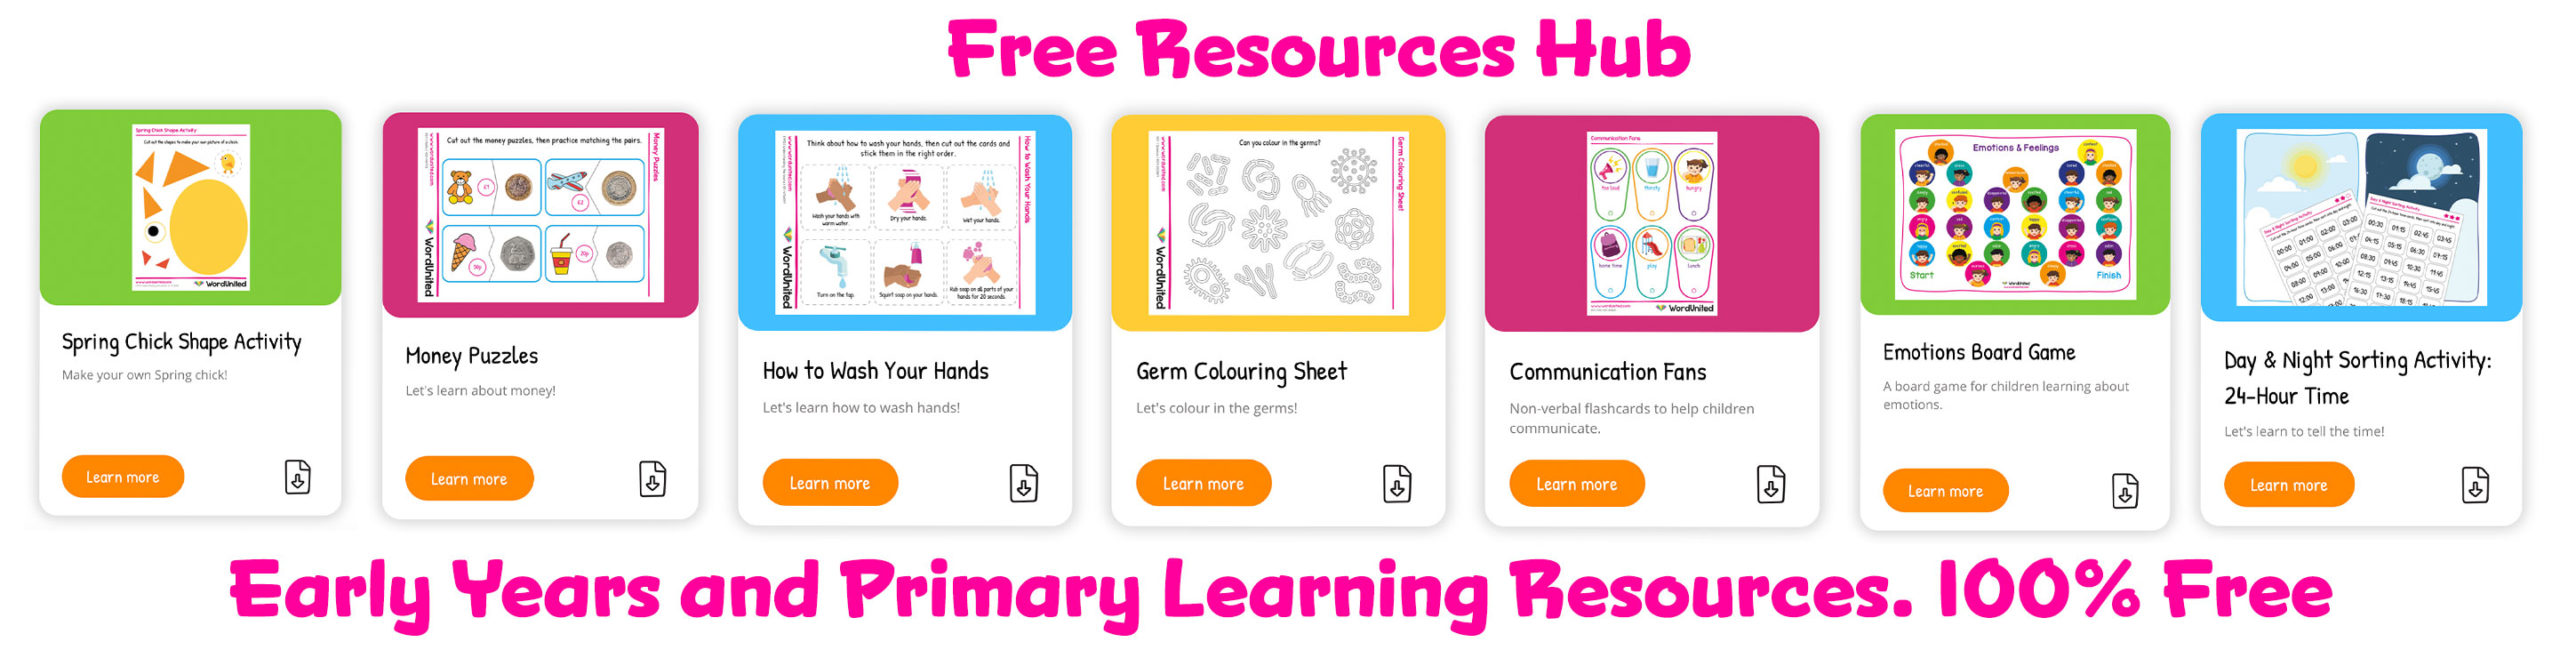 Free Printable Resources and Activities for kids